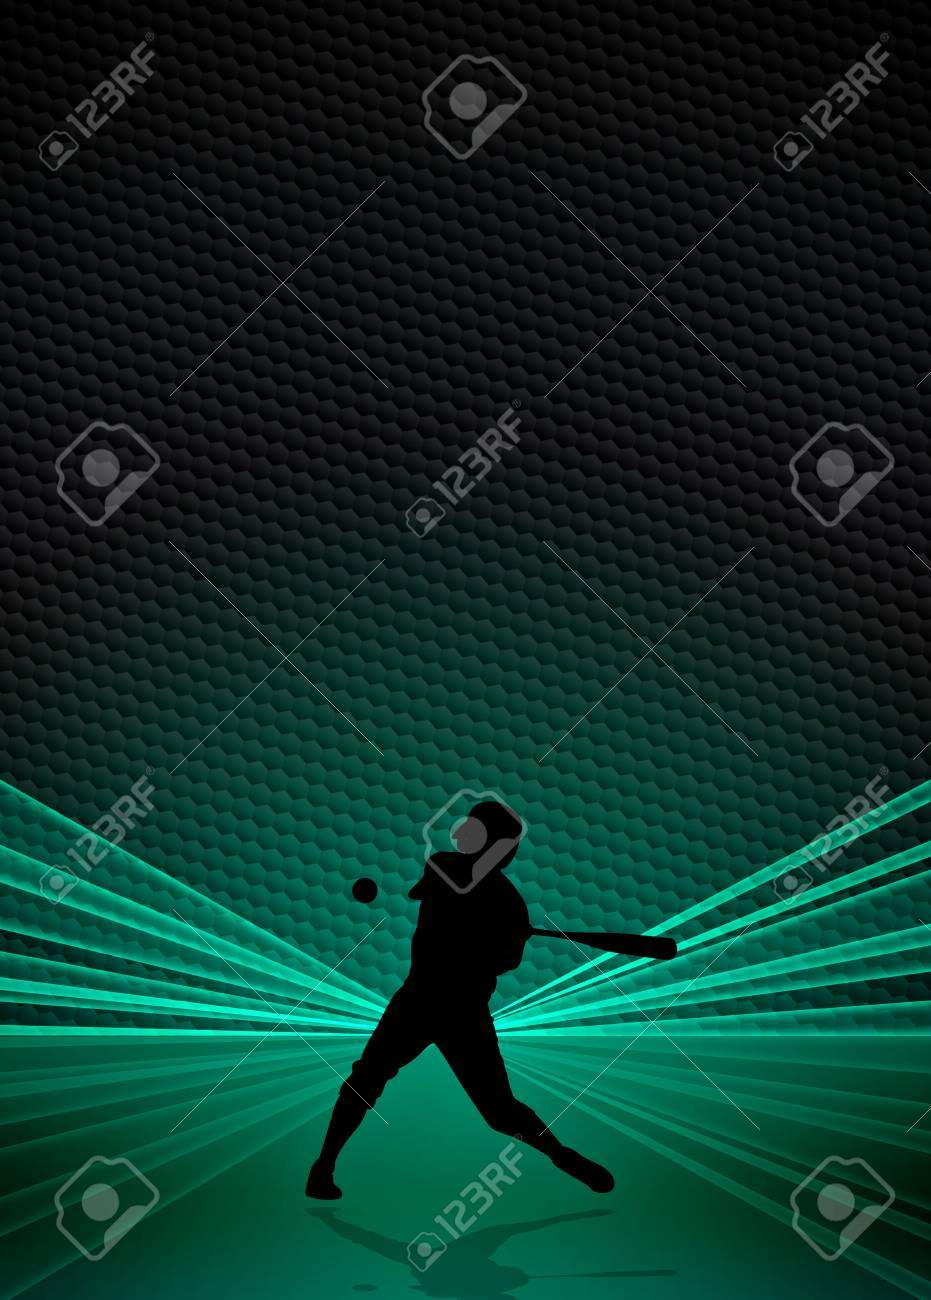 Sport business poster: Baseball player background with space Stock Photo - 18380178